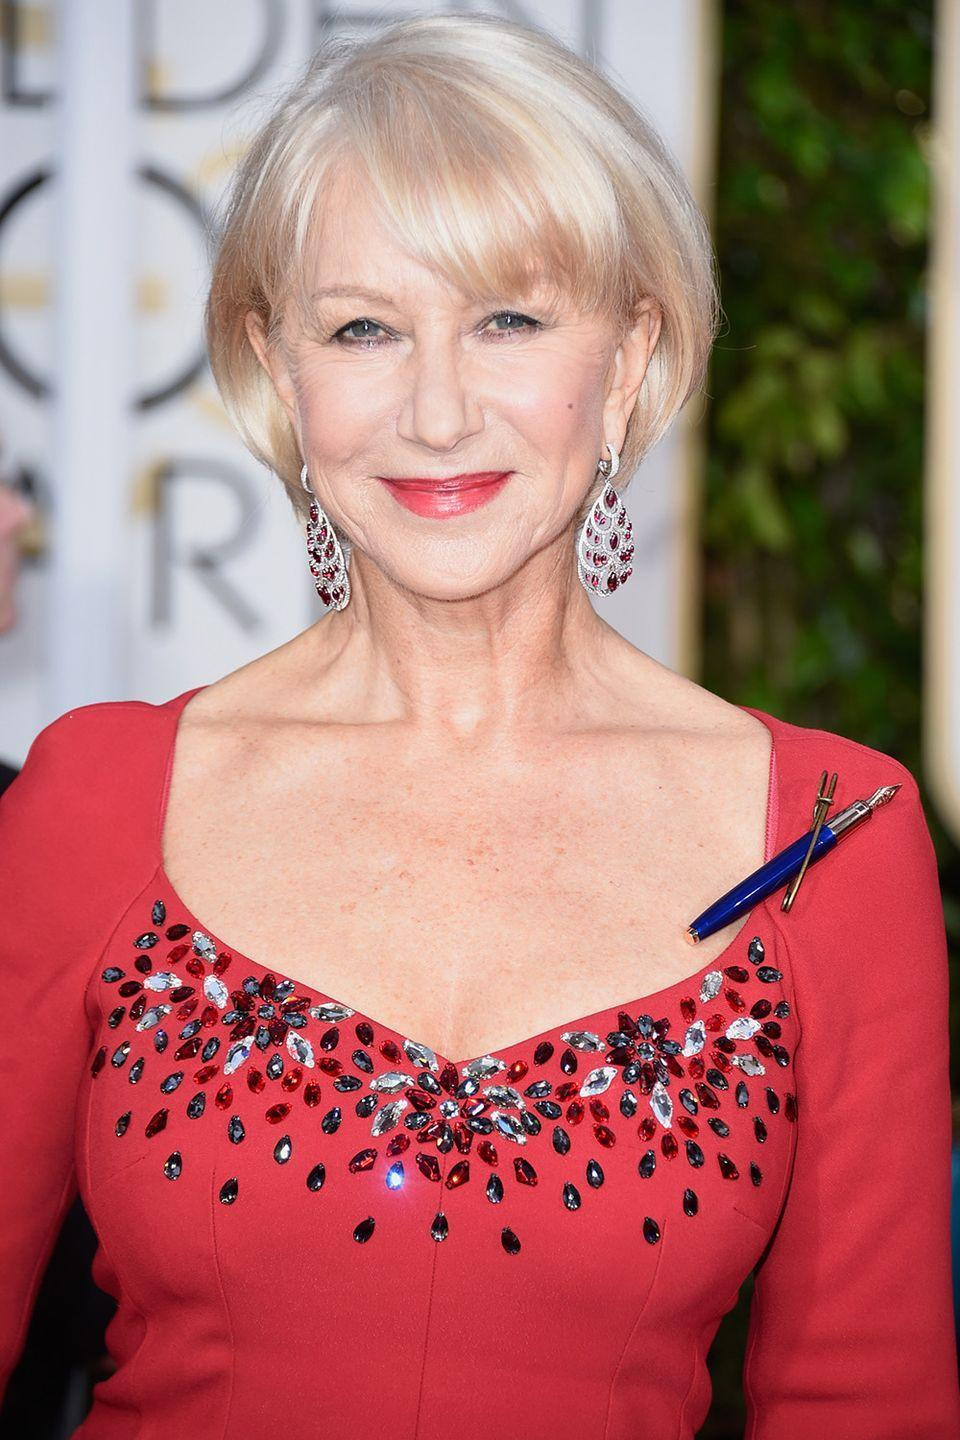 "<p><strong>Born</strong>: Ilyena Lydia Mironoff</p><p>The British actress was actually born Ilyena Lydia Mironoff, but her father <a href=""https://us.hellomagazine.com/profiles/helen-mirren/"" rel=""nofollow noopener"" target=""_blank"" data-ylk=""slk:changed"" class=""link rapid-noclick-resp"">changed</a> the family's last name from Mironoff to Mirren in the fifties. Ilynea then simplified her first name to Helen when she embarked on her acting career.</p>"